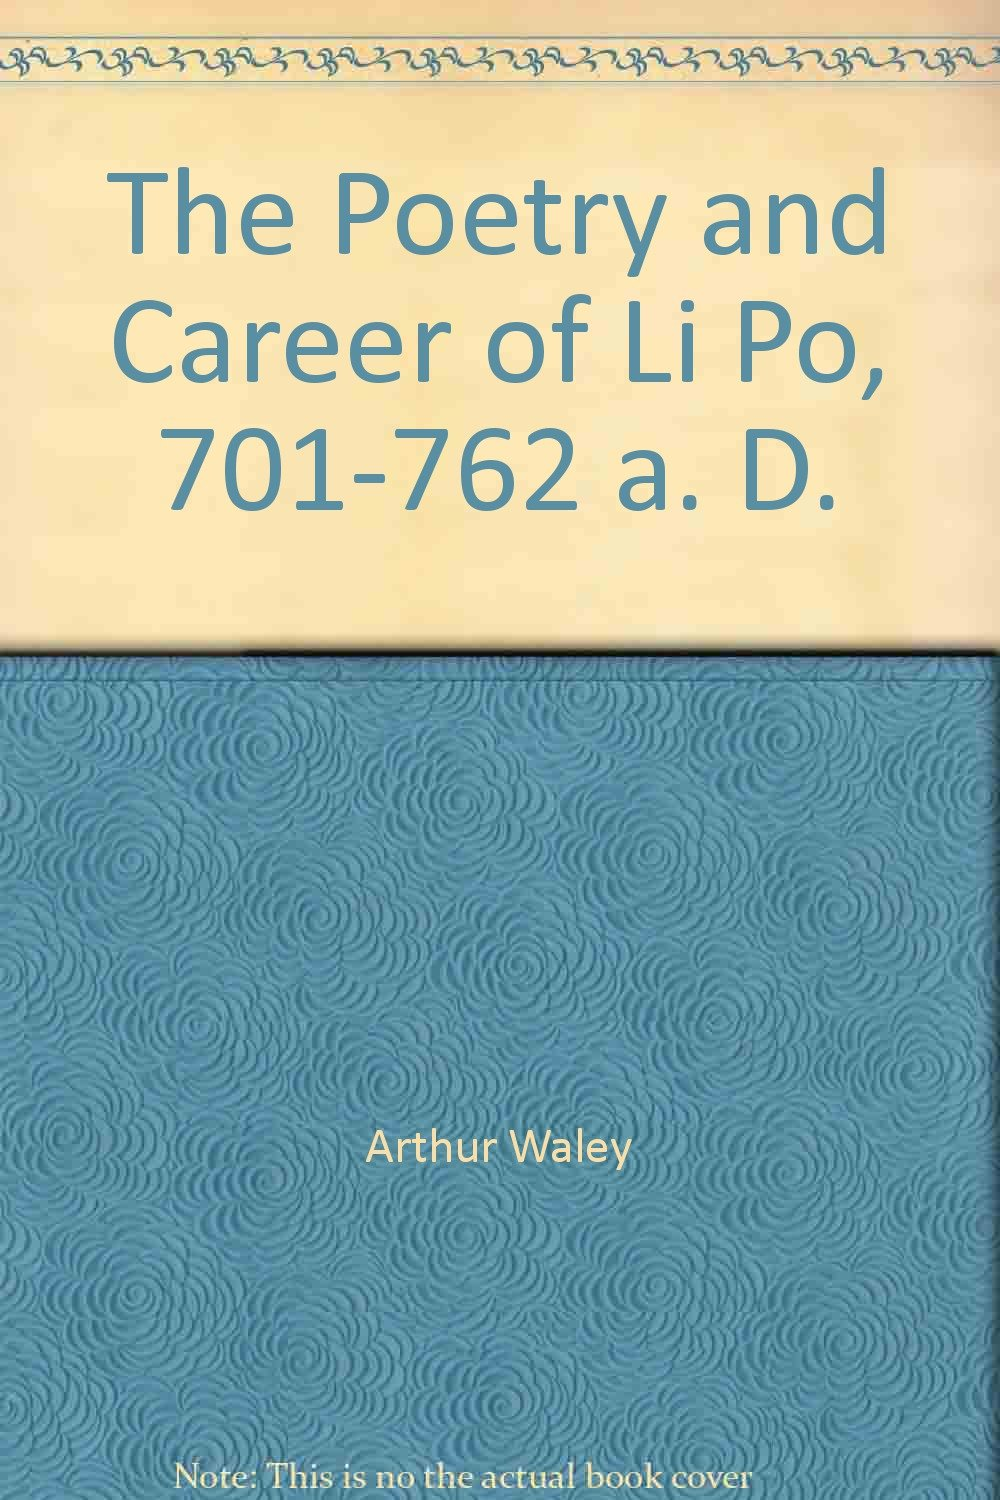 The Poetry and Career of Li Po, 701-762 a. D.